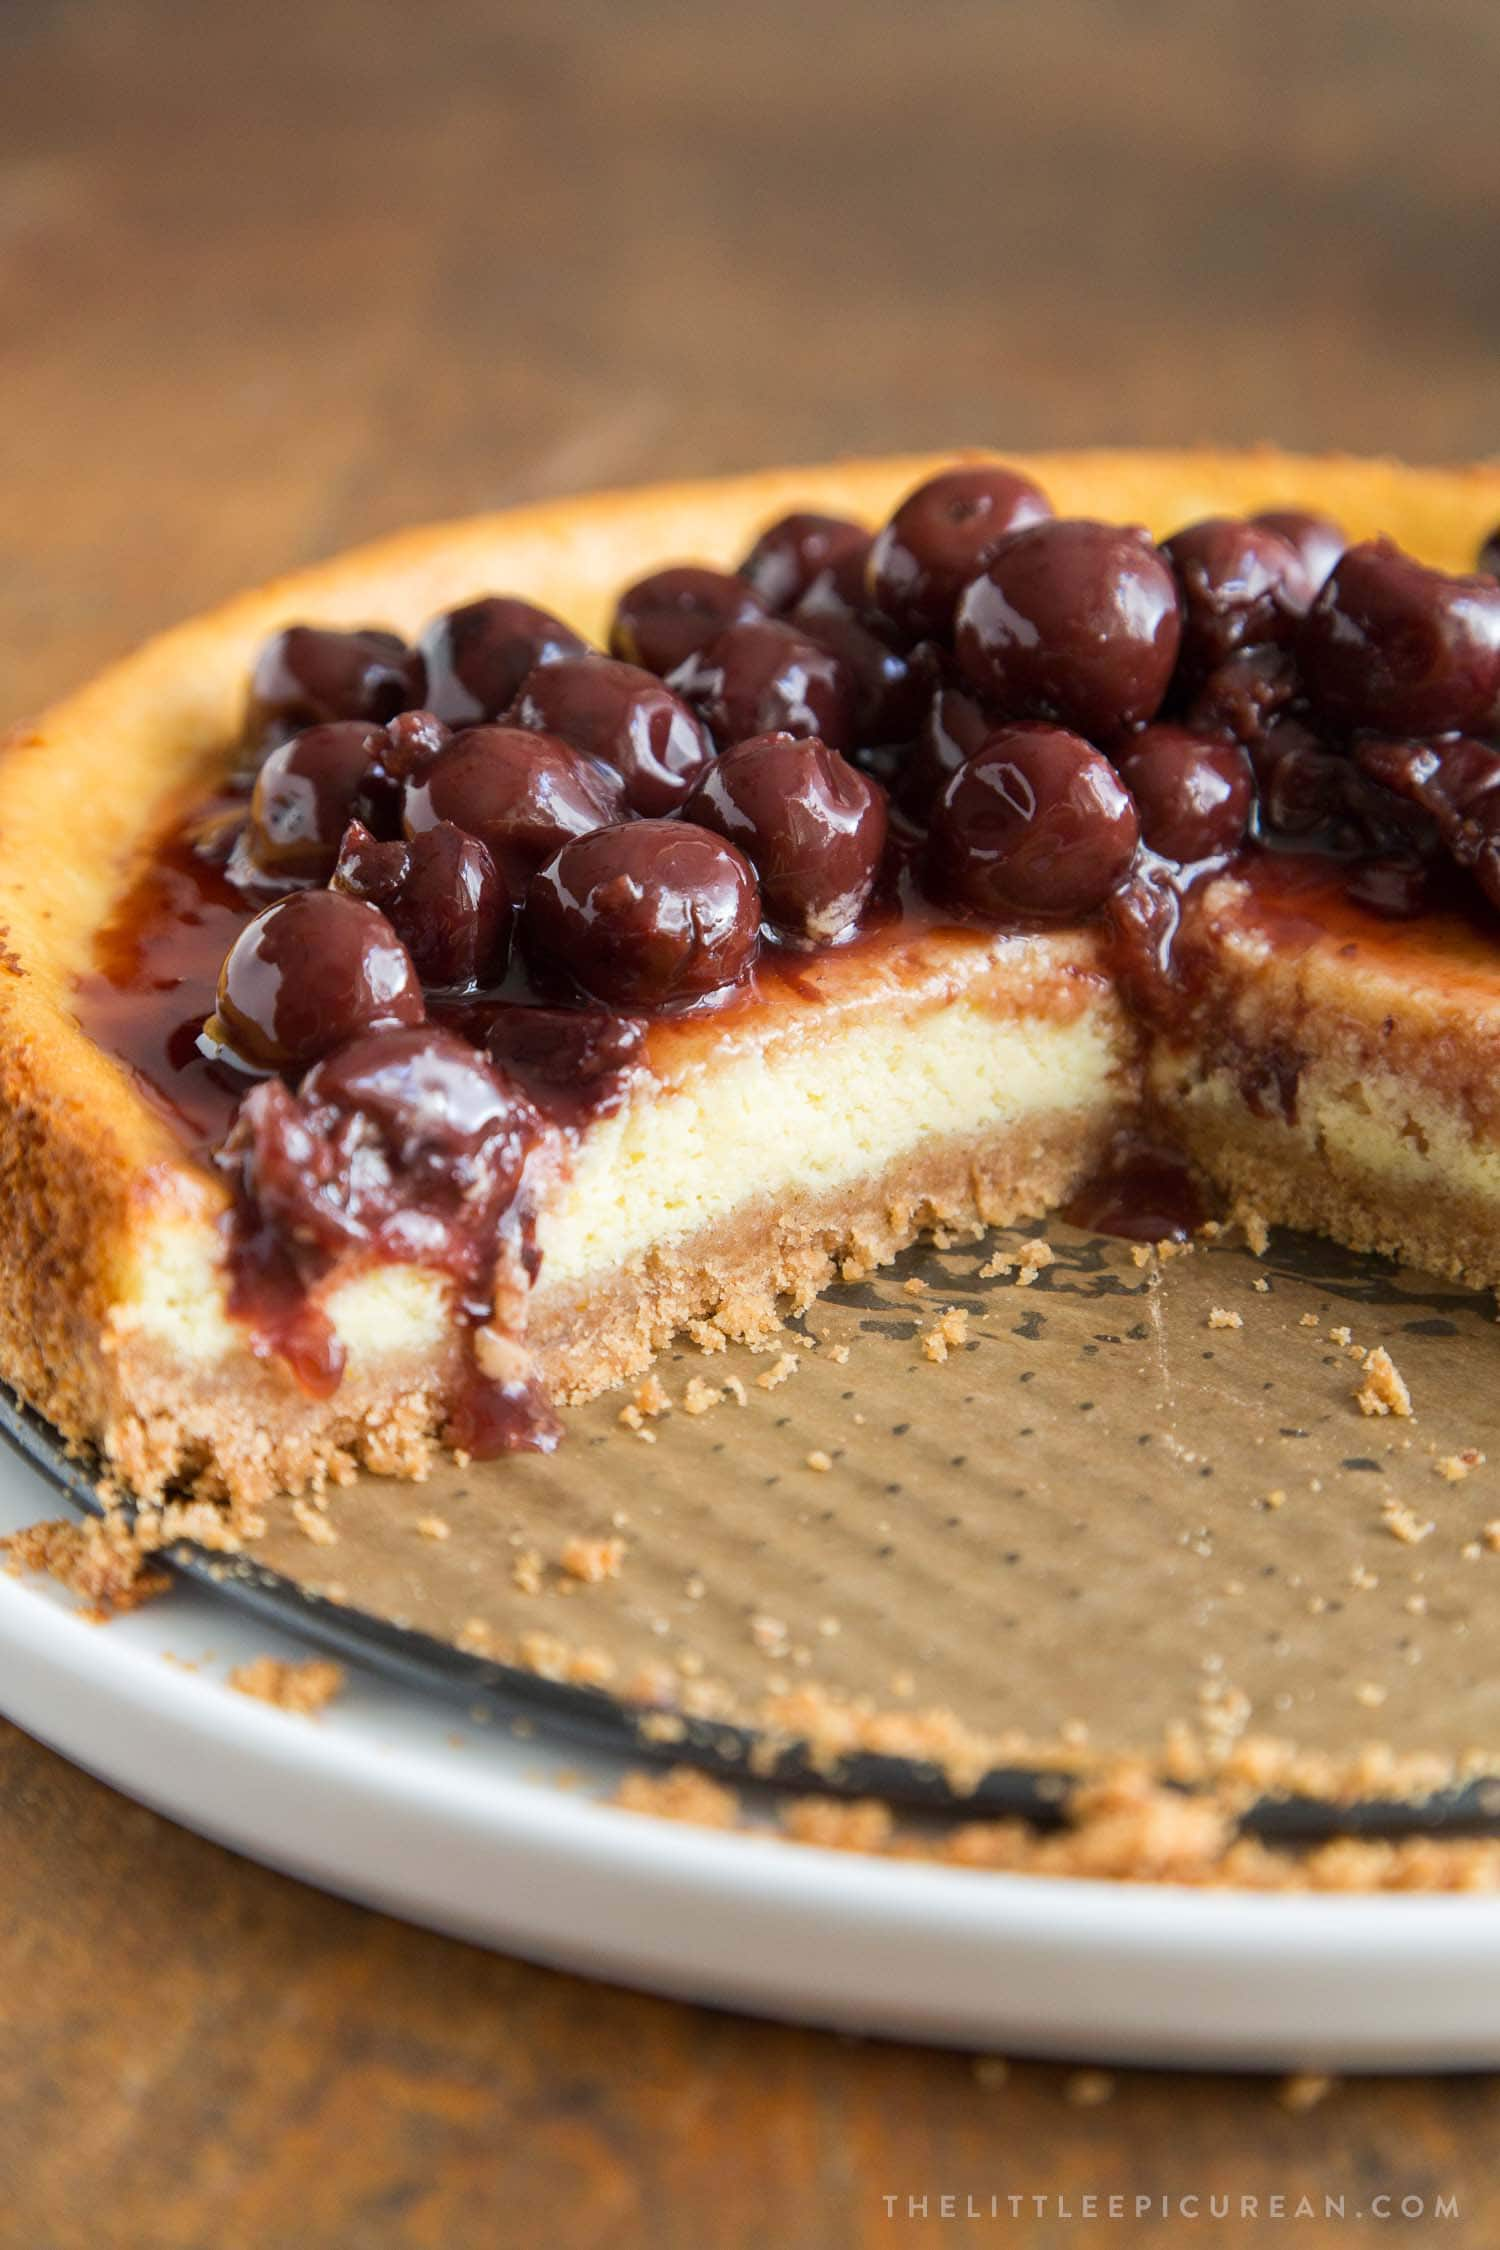 Ricotta Cheesecake with Brandied Cherries